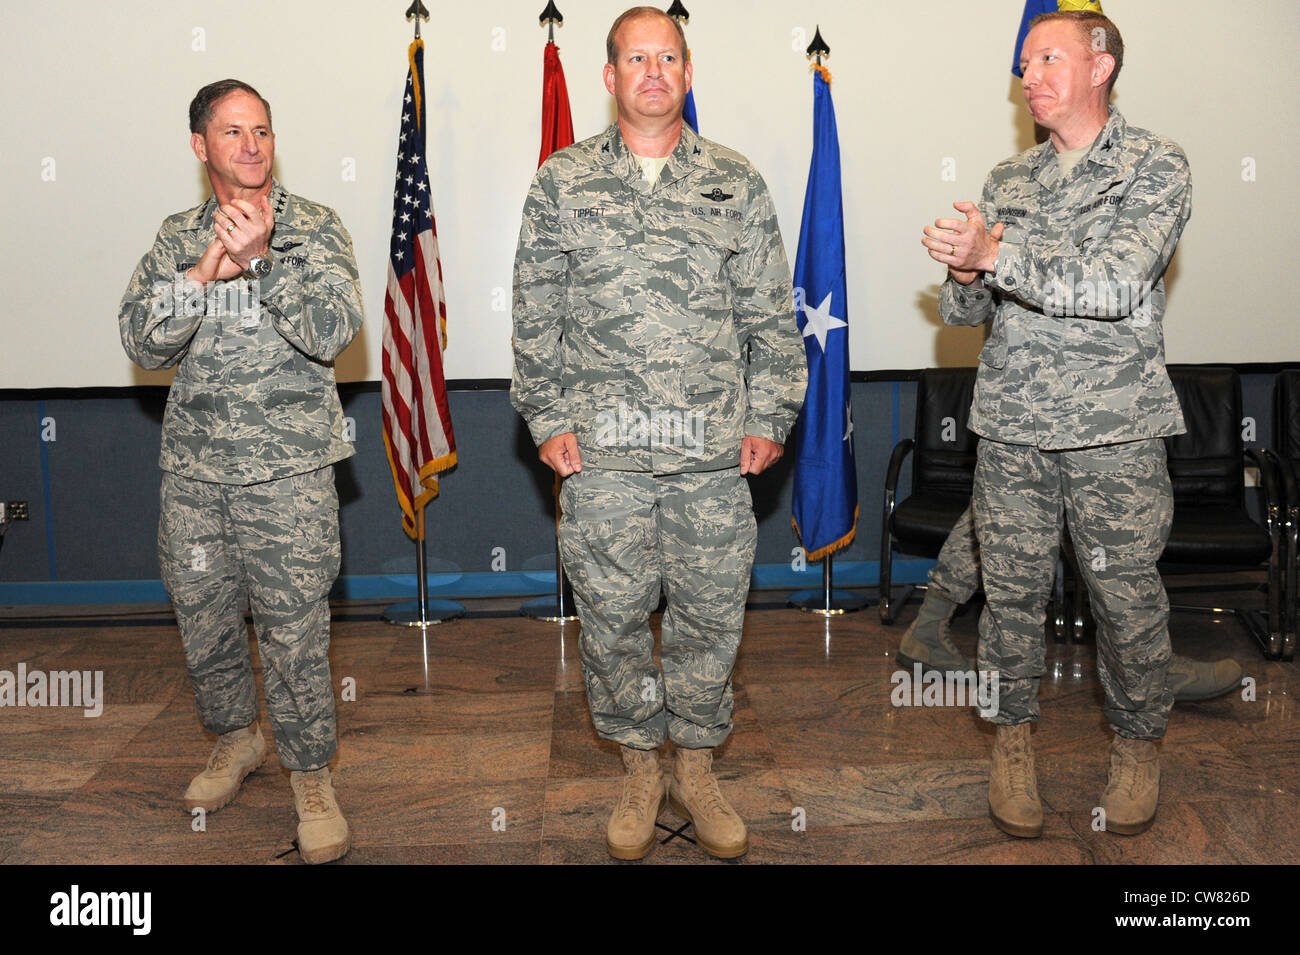 SOUTHWEST ASIA - U.S. Air Force Lt. Gen. David Goldfein, U.S. Air Forces Central Command and Combined Forces Air Stock Photo